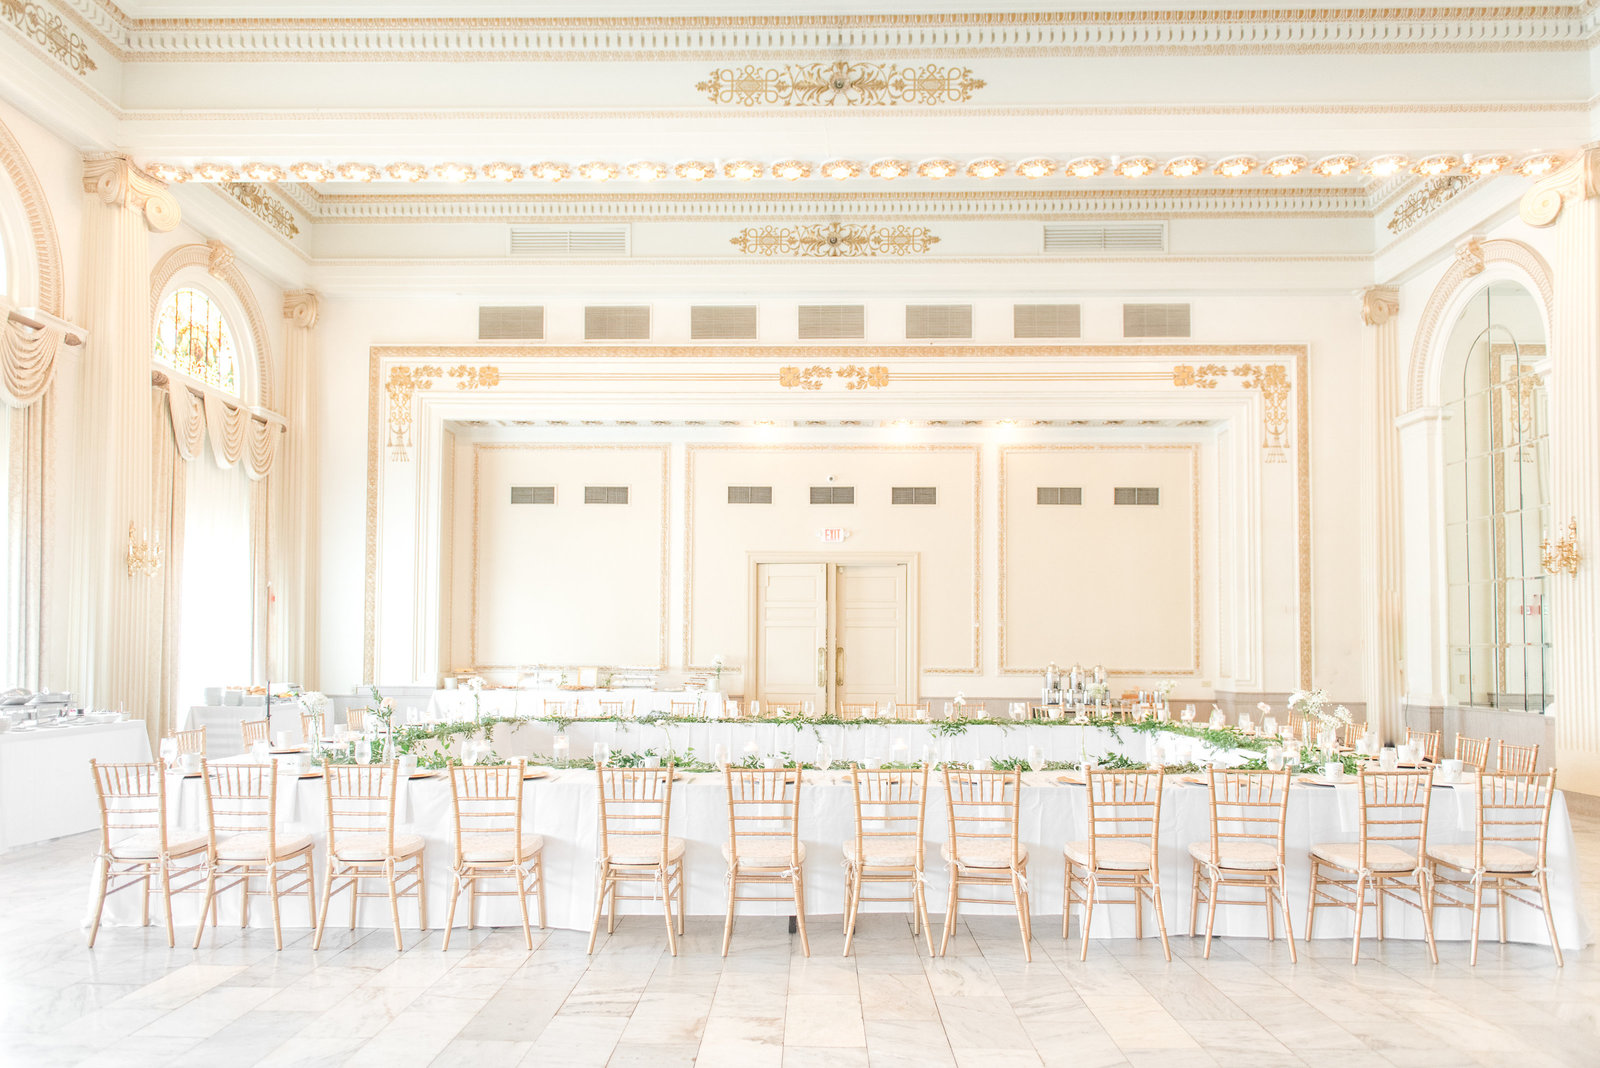 The Westin Columbus Wedding in the Ivory Ballroom